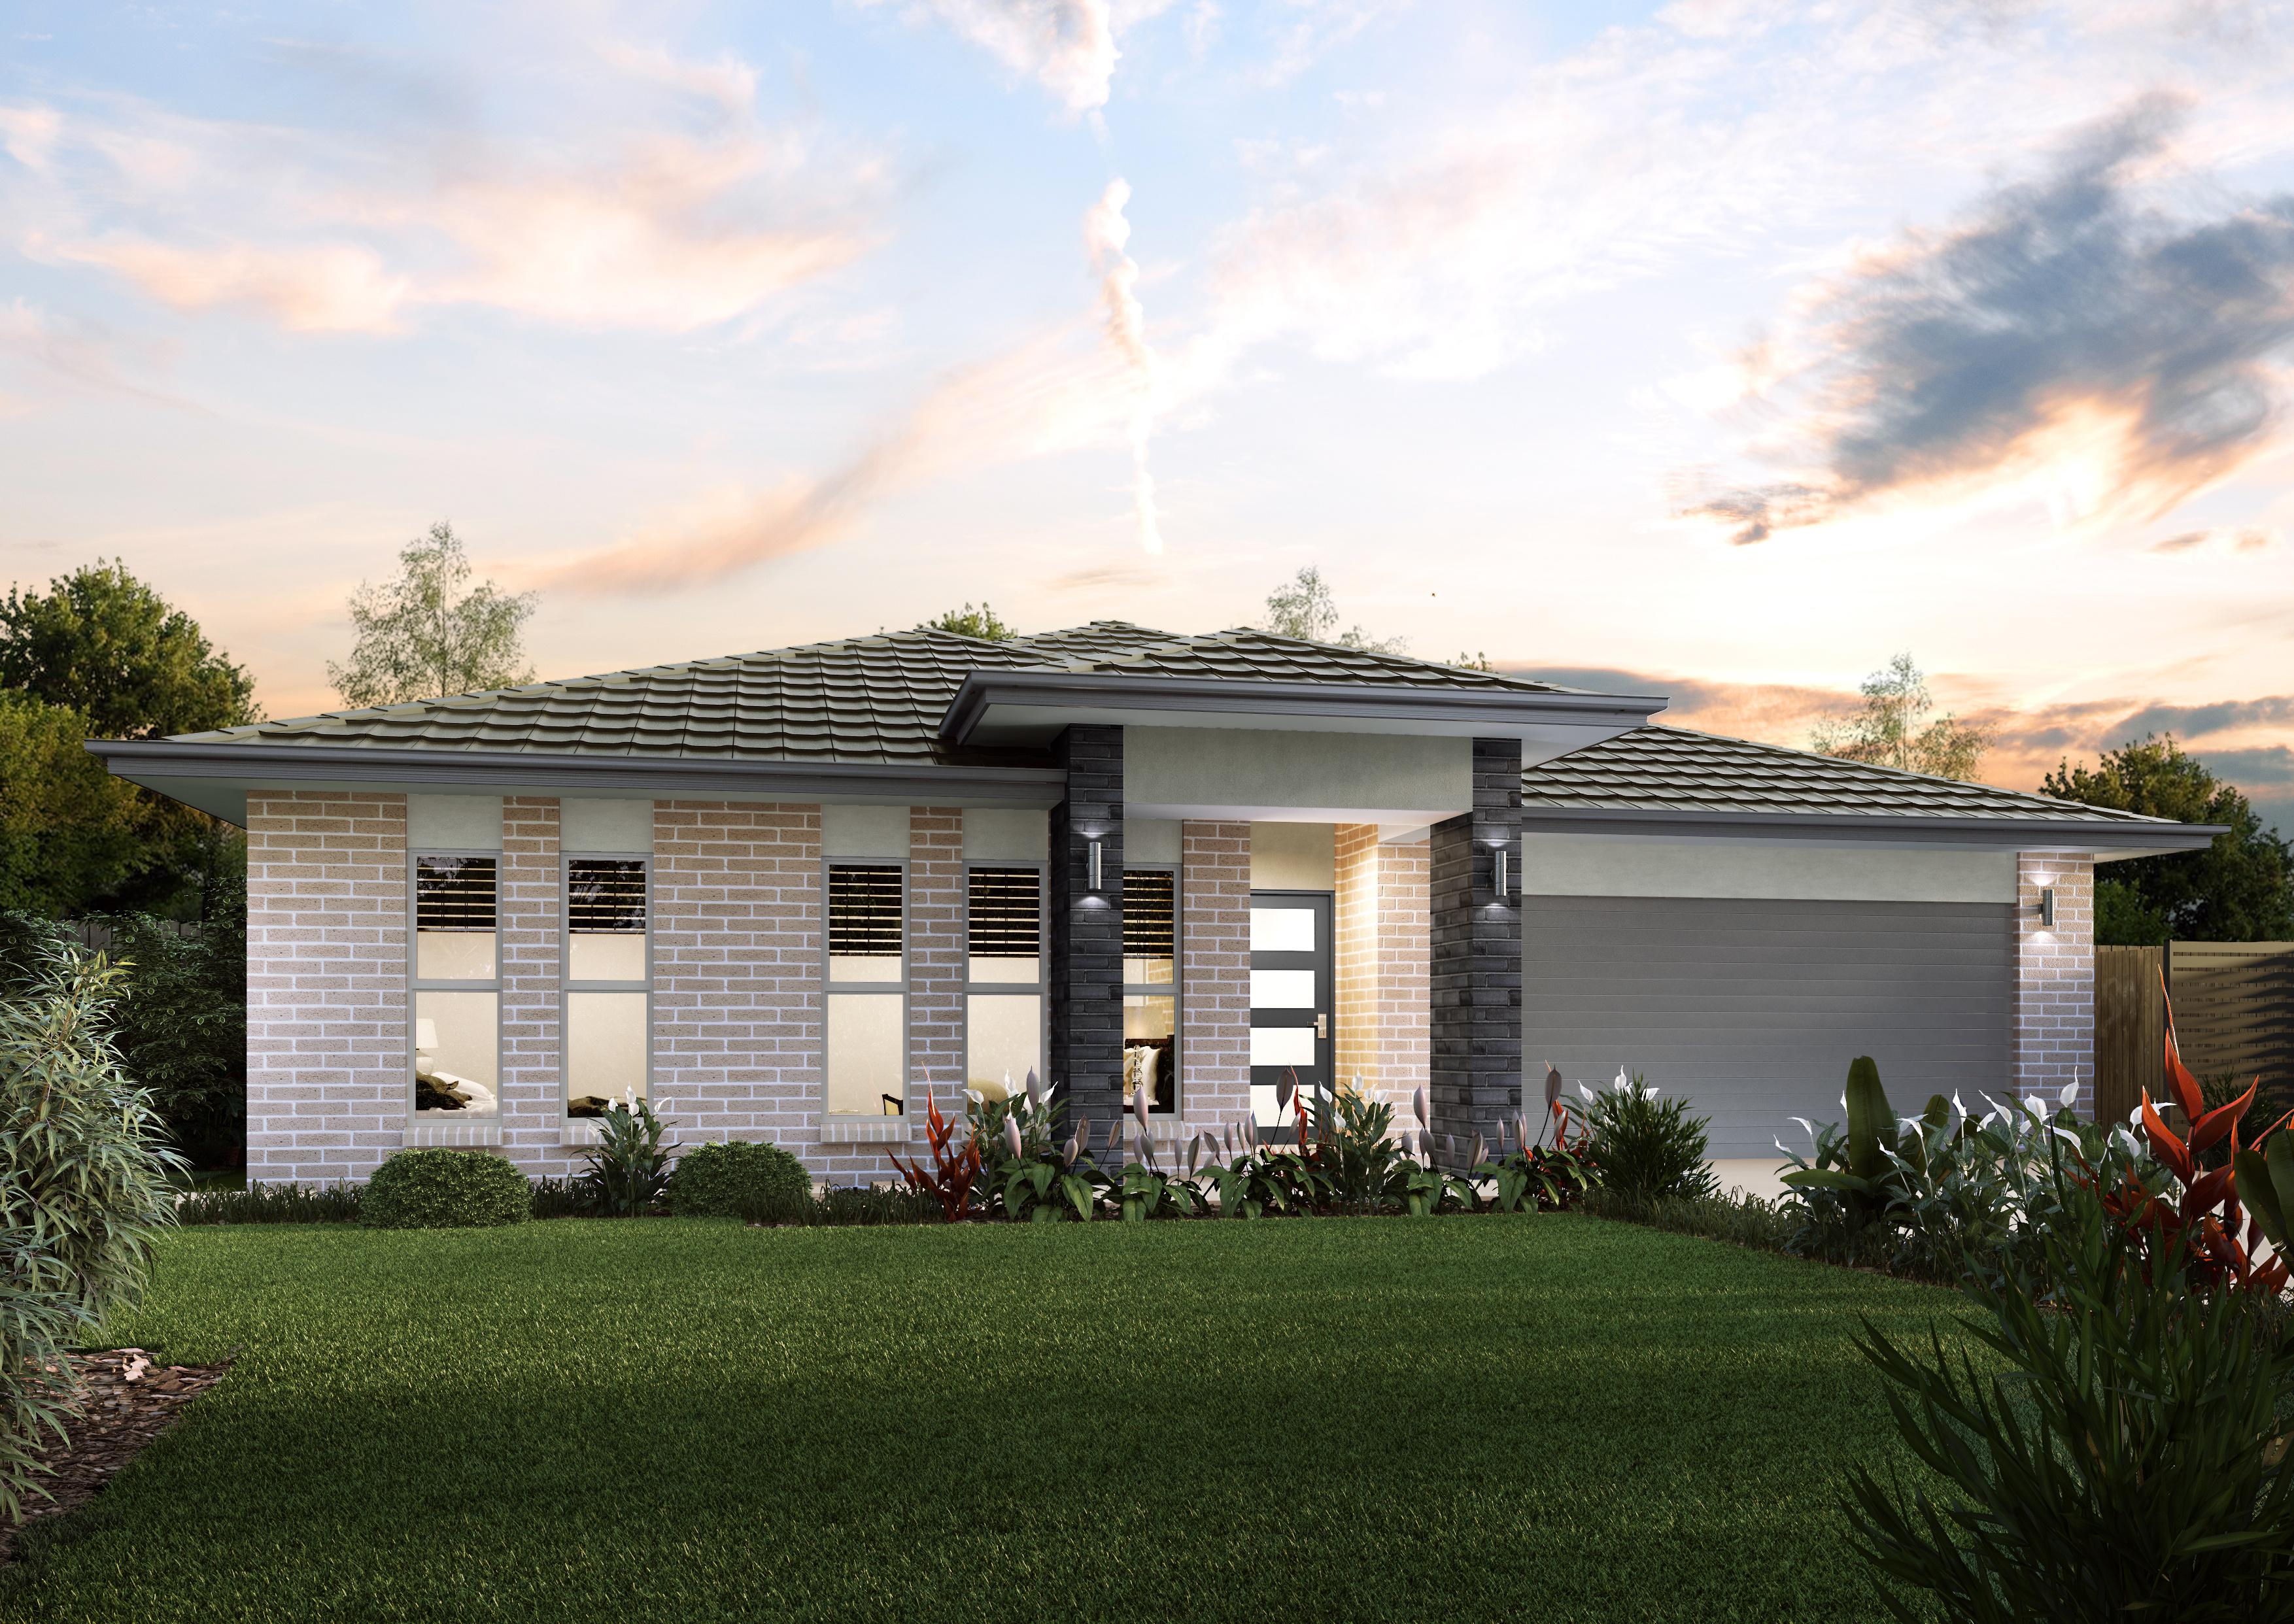 New home designs 150k nsw 28 images new home design for New home designs nsw australia